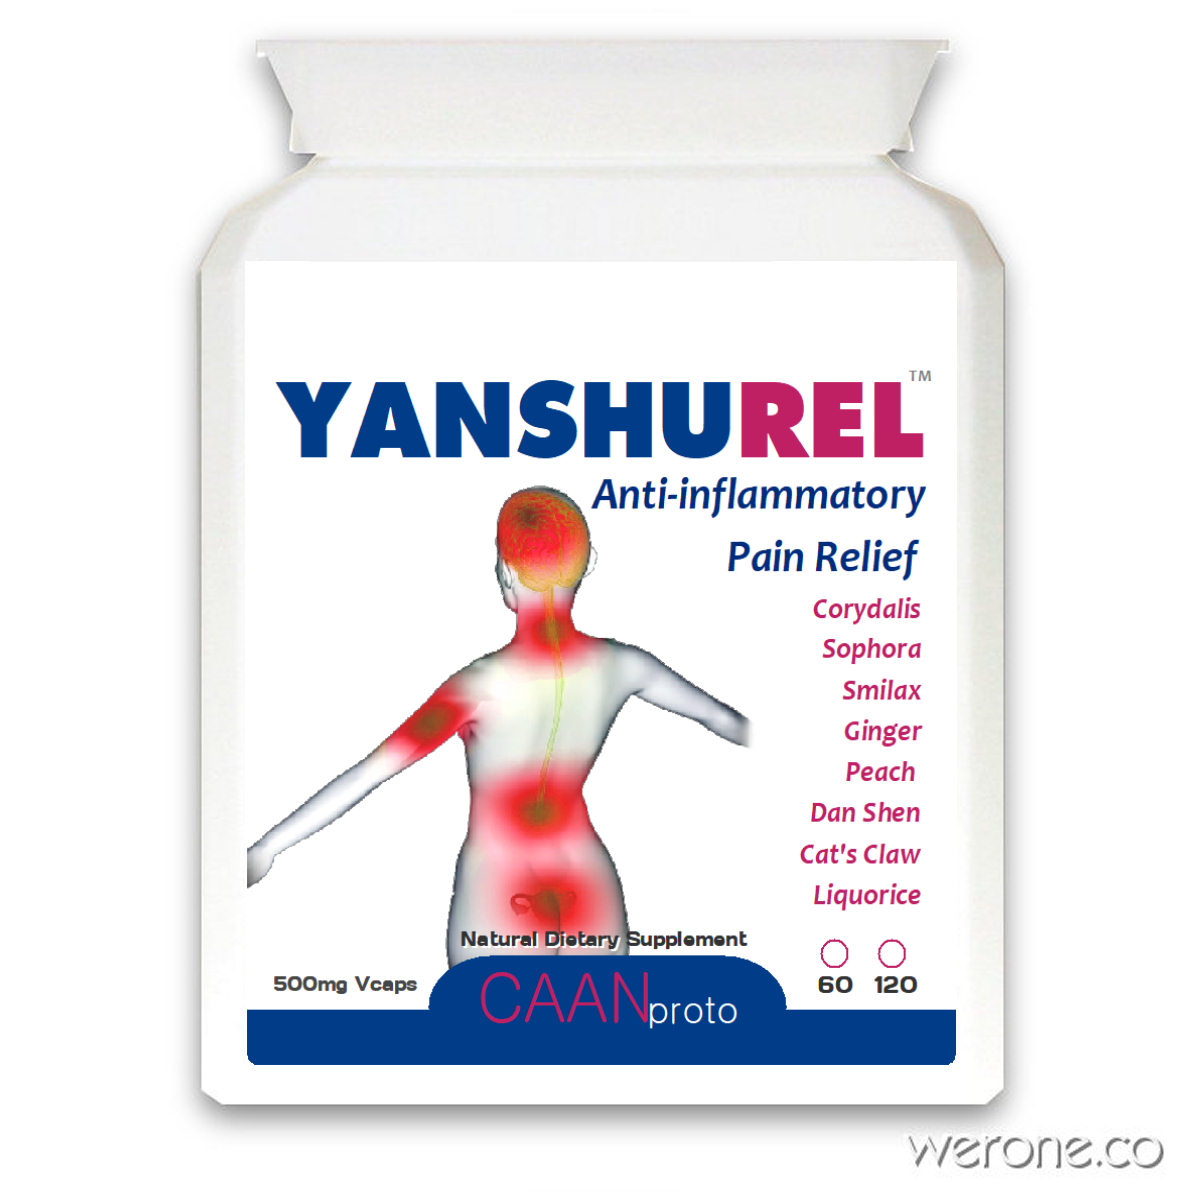 Yanshurel Pain-Relieving Capsules